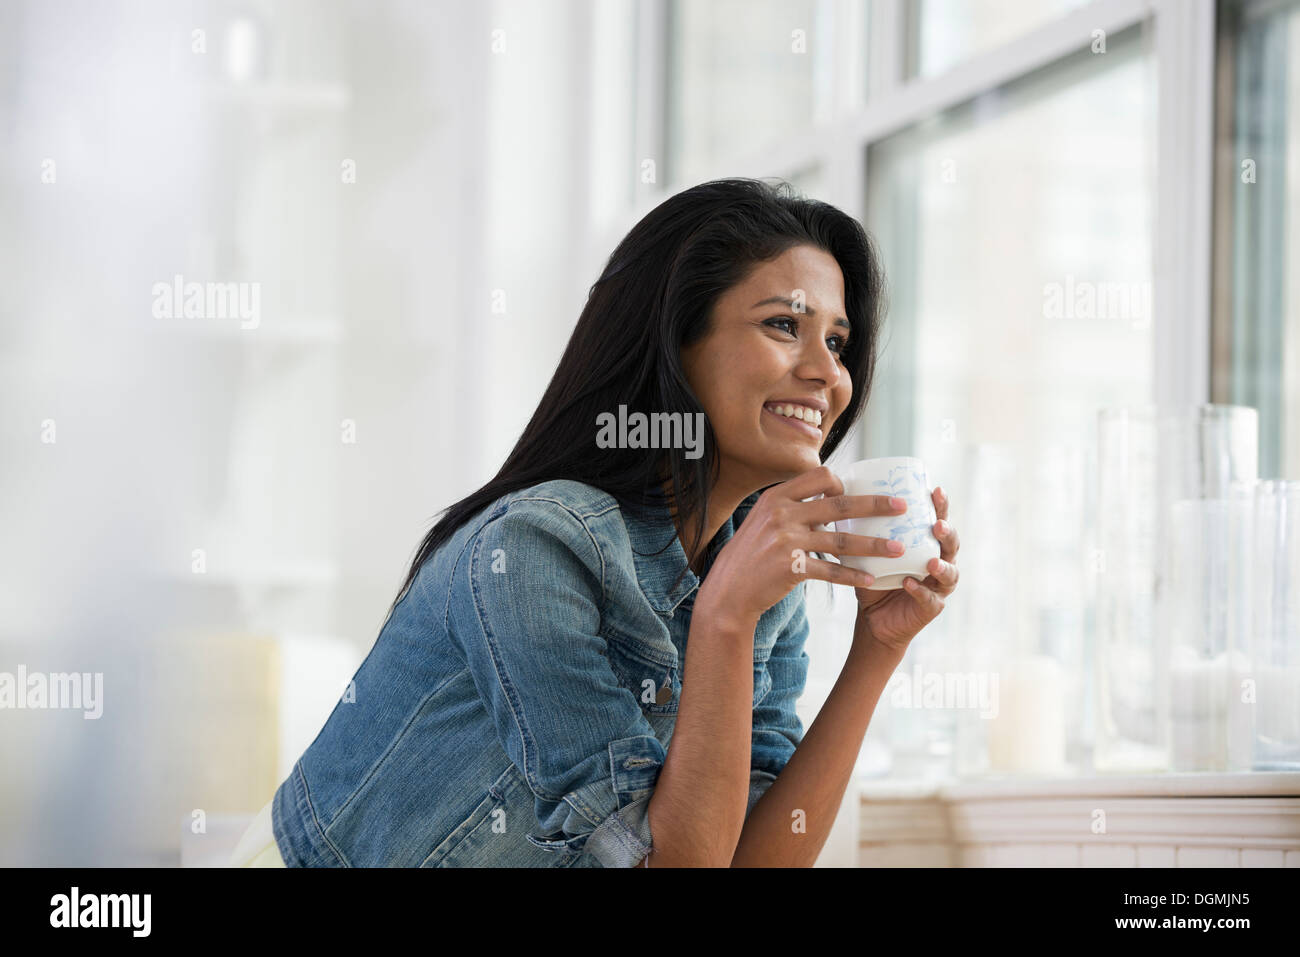 A young woman wearing a denim shirt, holding a china cup. - Stock Image